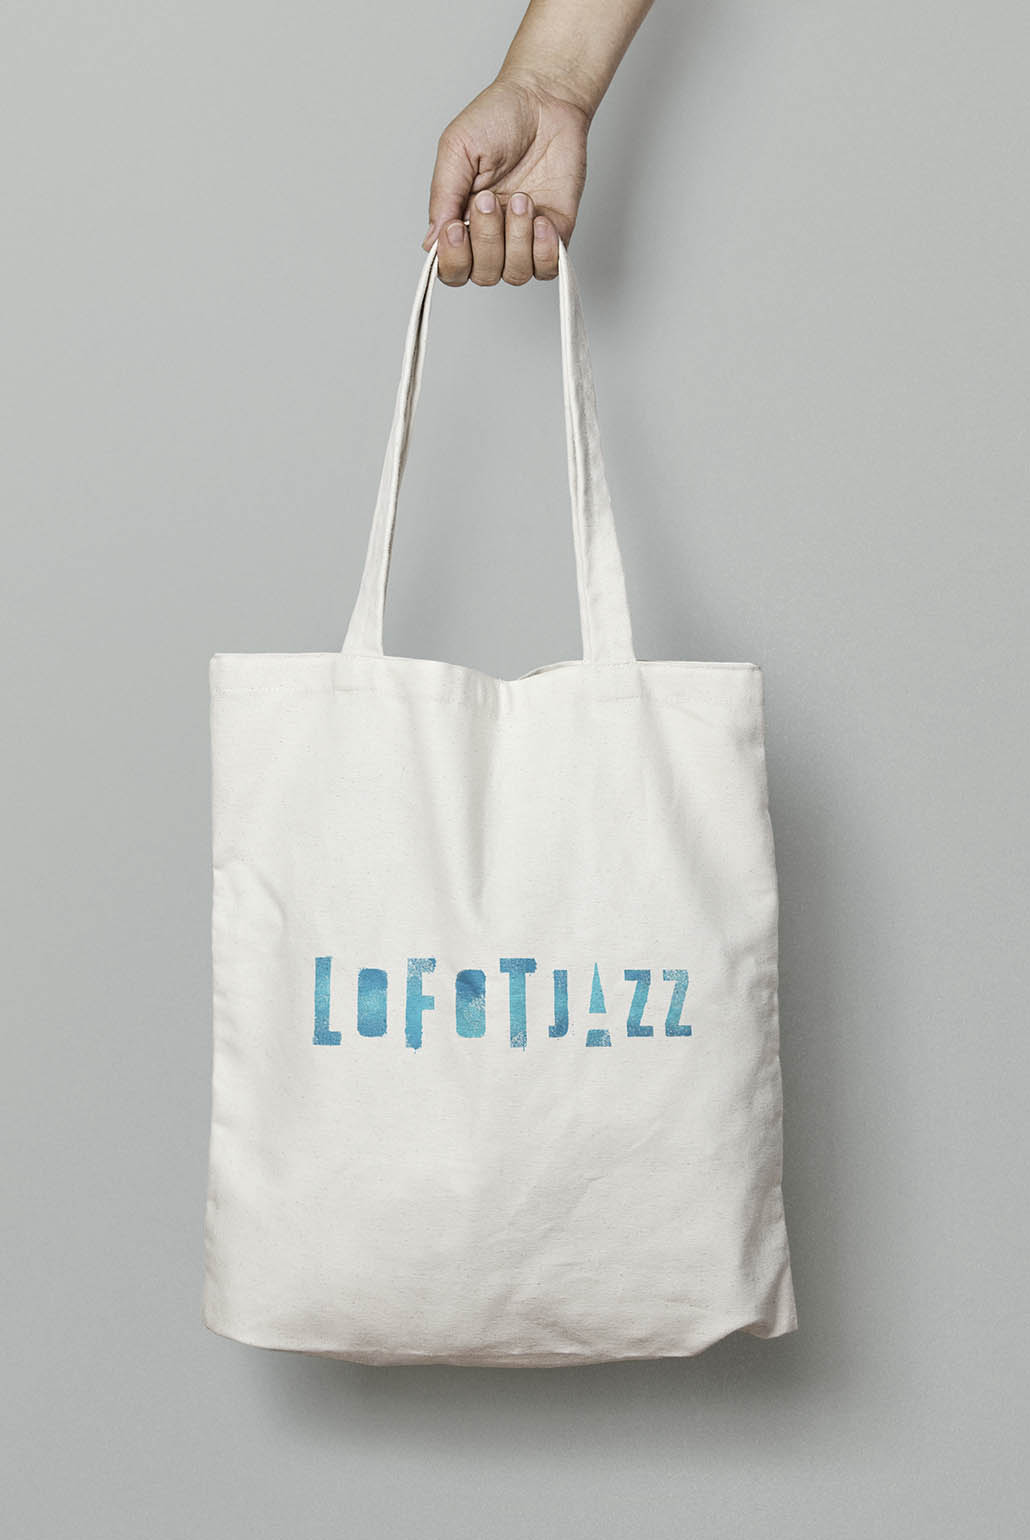 Lofotjazz